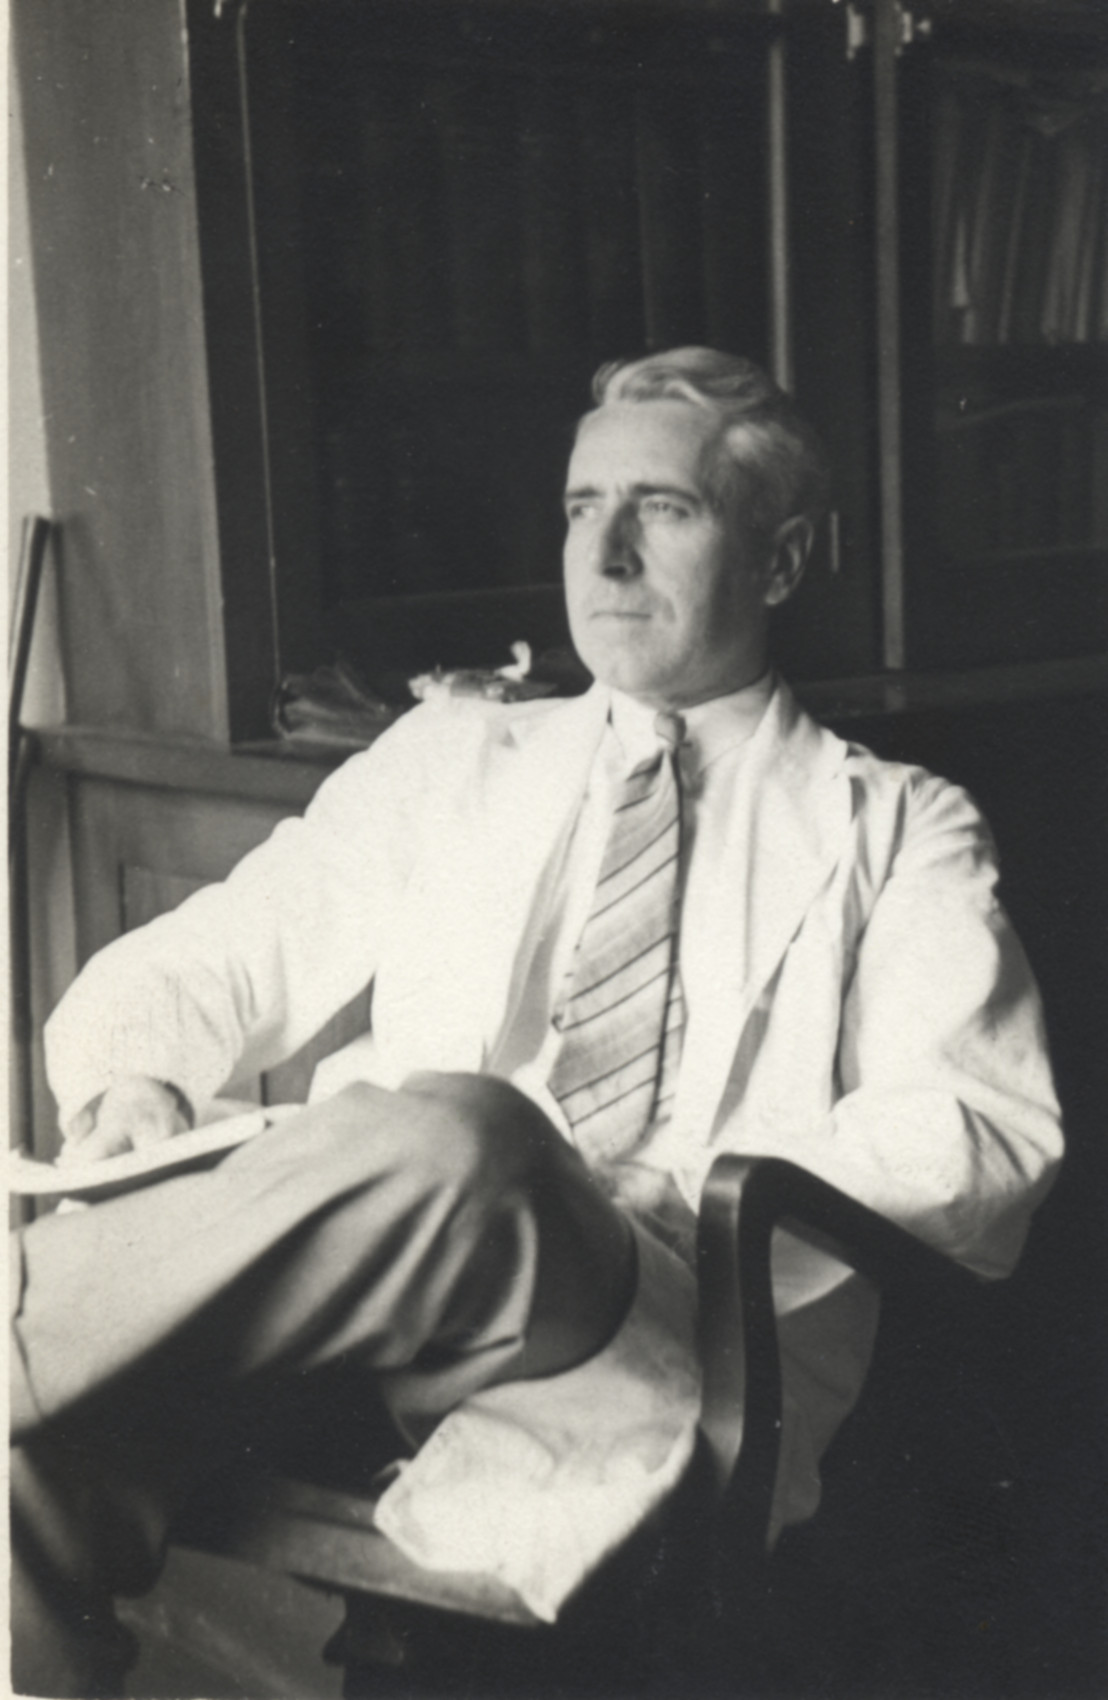 David A. Scott (1892–1971) studied chemistry and mineralogy at U of T starting in 1914 and later applied his skills to the production of acetone in an explosives plant. Before arriving at Connaught Labs, he worked as a research chemist in a paper mill and undertook research related to the paper industry at Queens University.